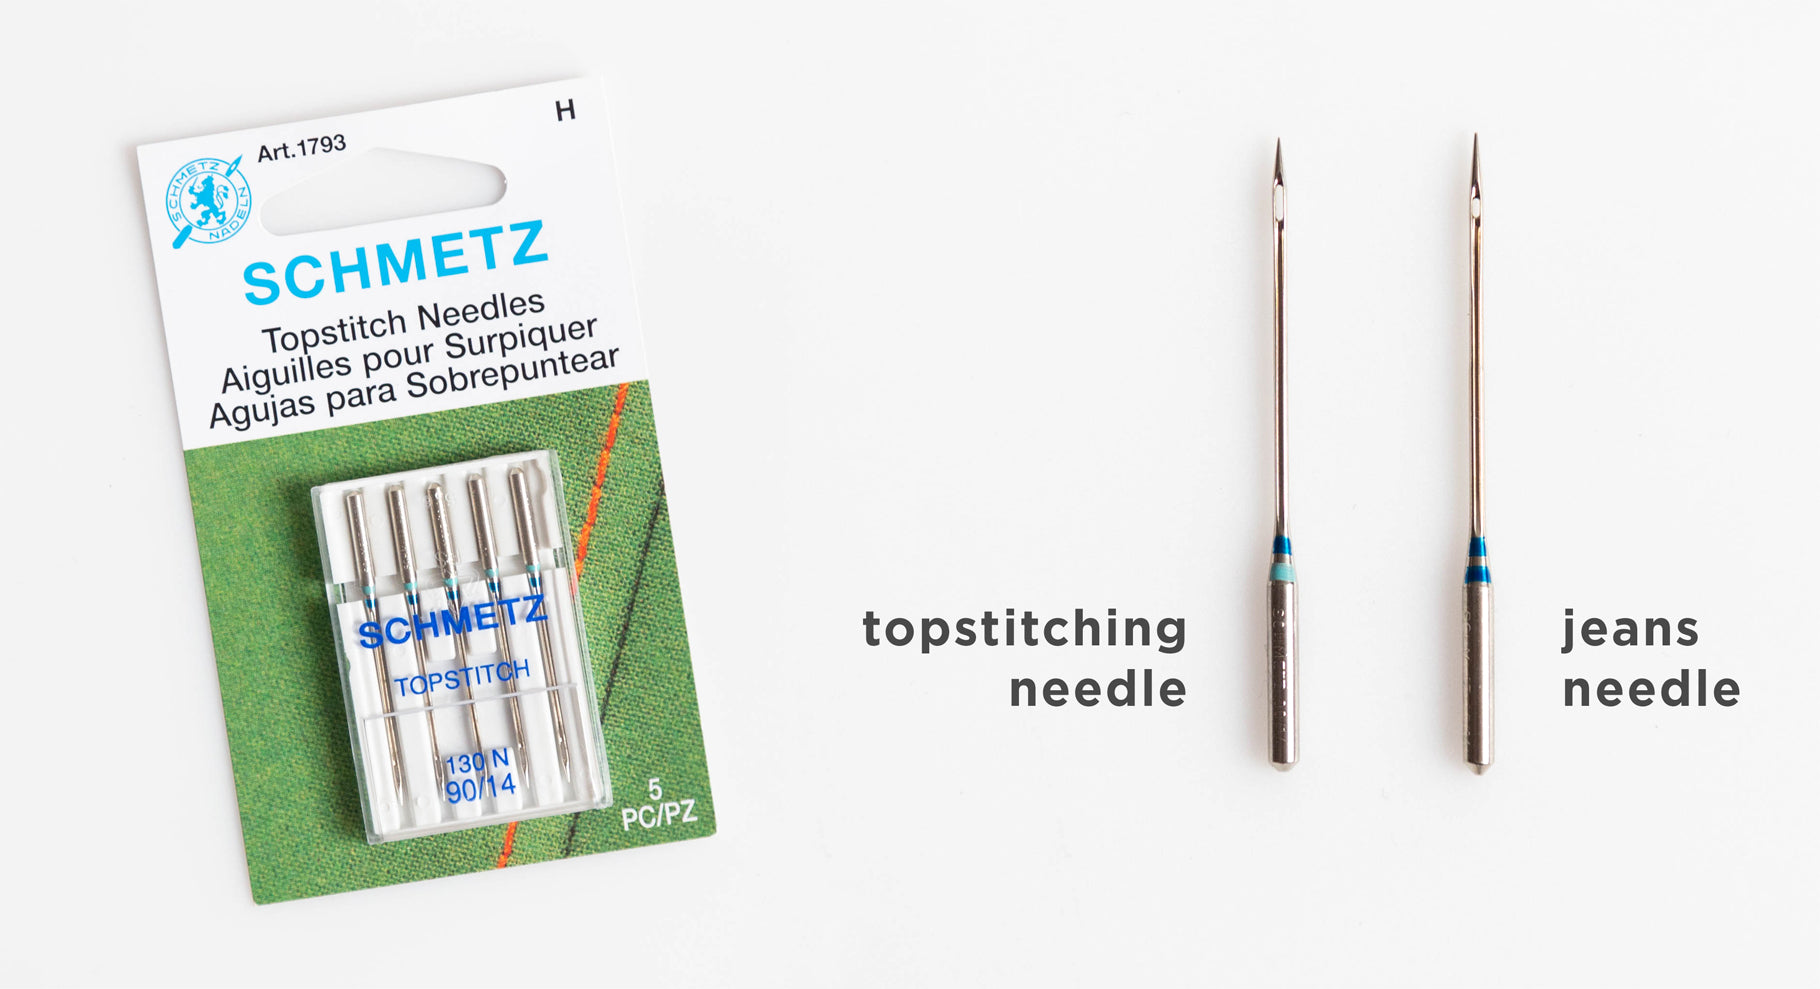 Our Top Tips for Professional Topstitching: Using the proper needle size | Grainline Studio